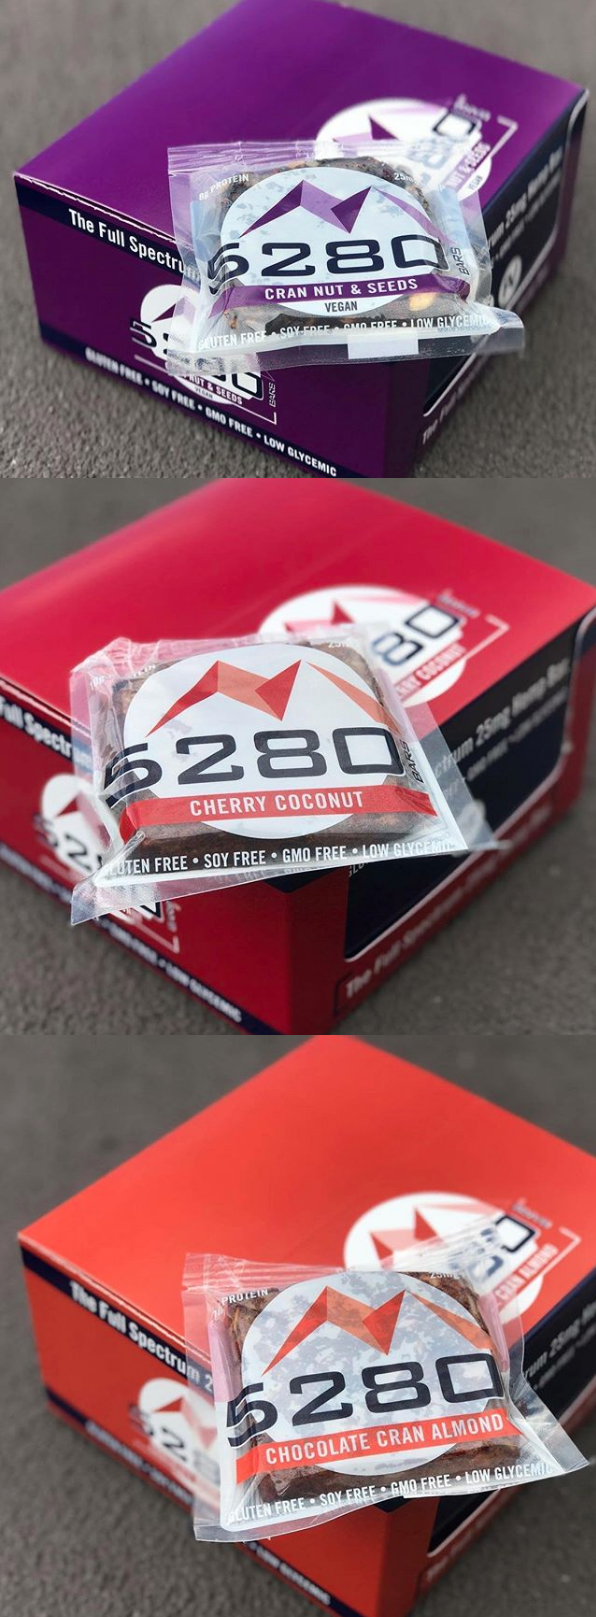 5280 Bars Packaging